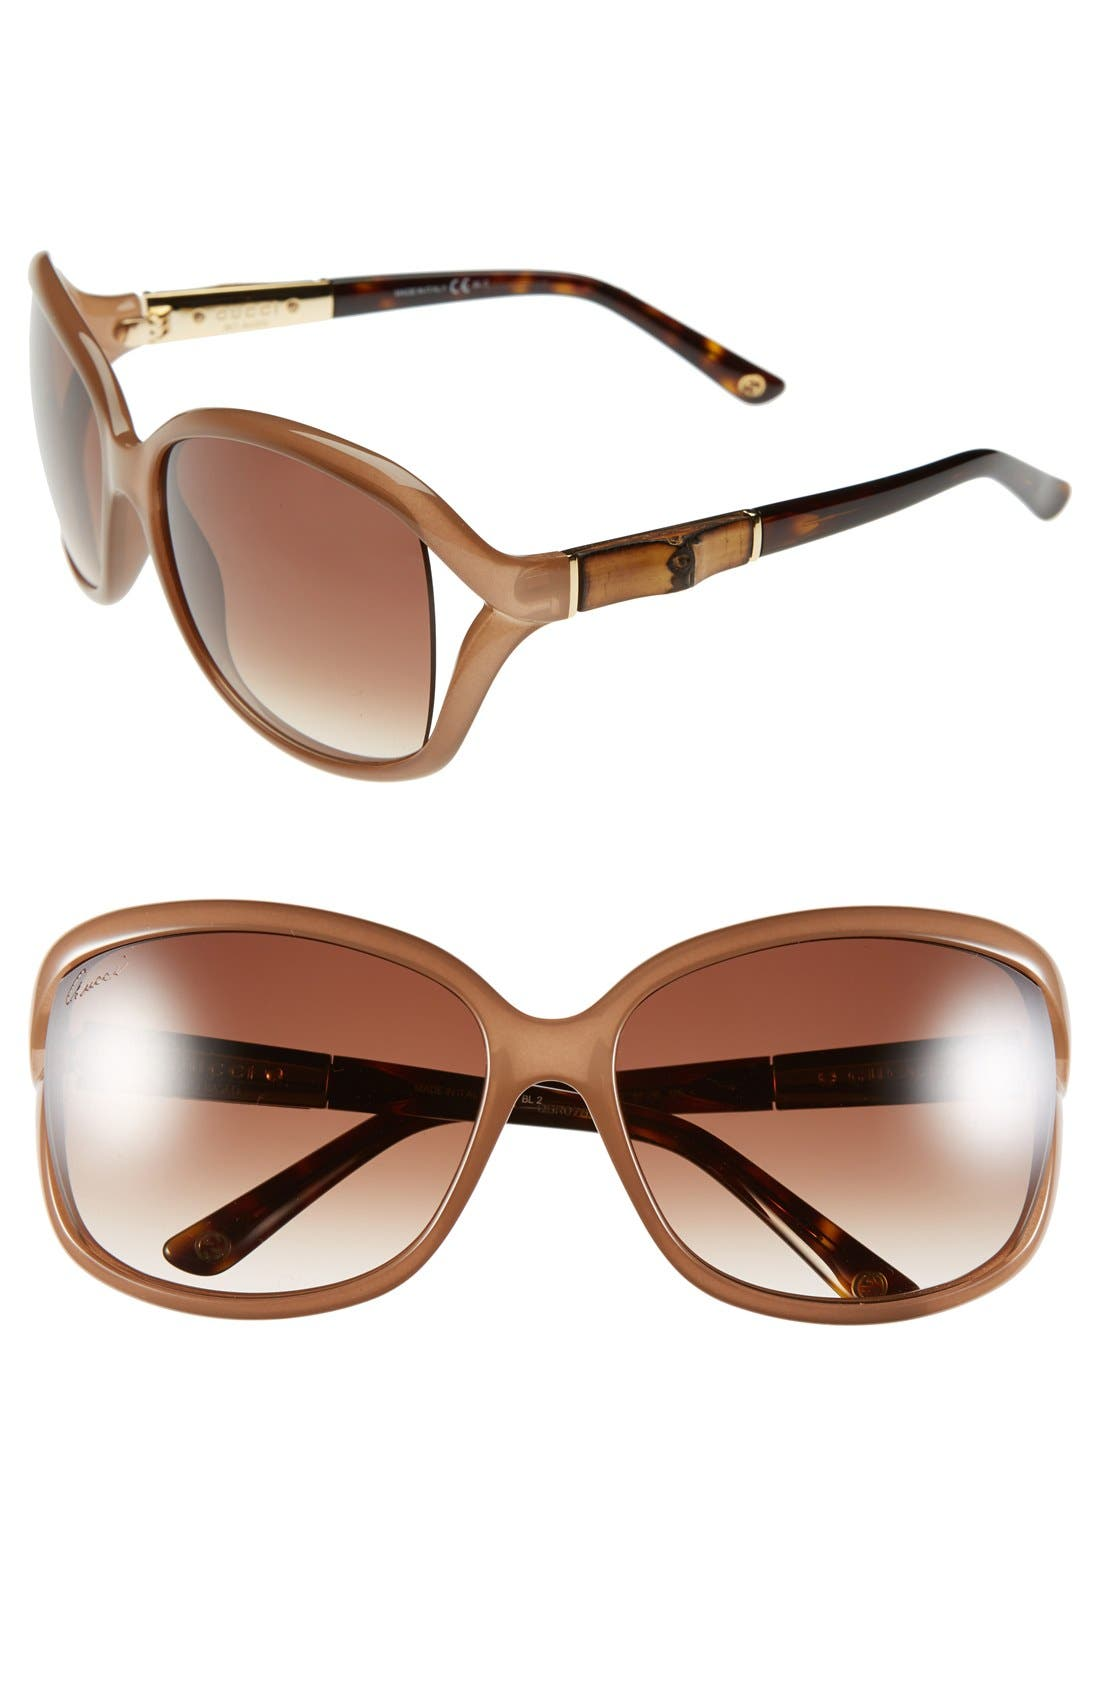 Alternate Image 1 Selected - Gucci 61mm Oversized Bamboo Temple Sunglasses